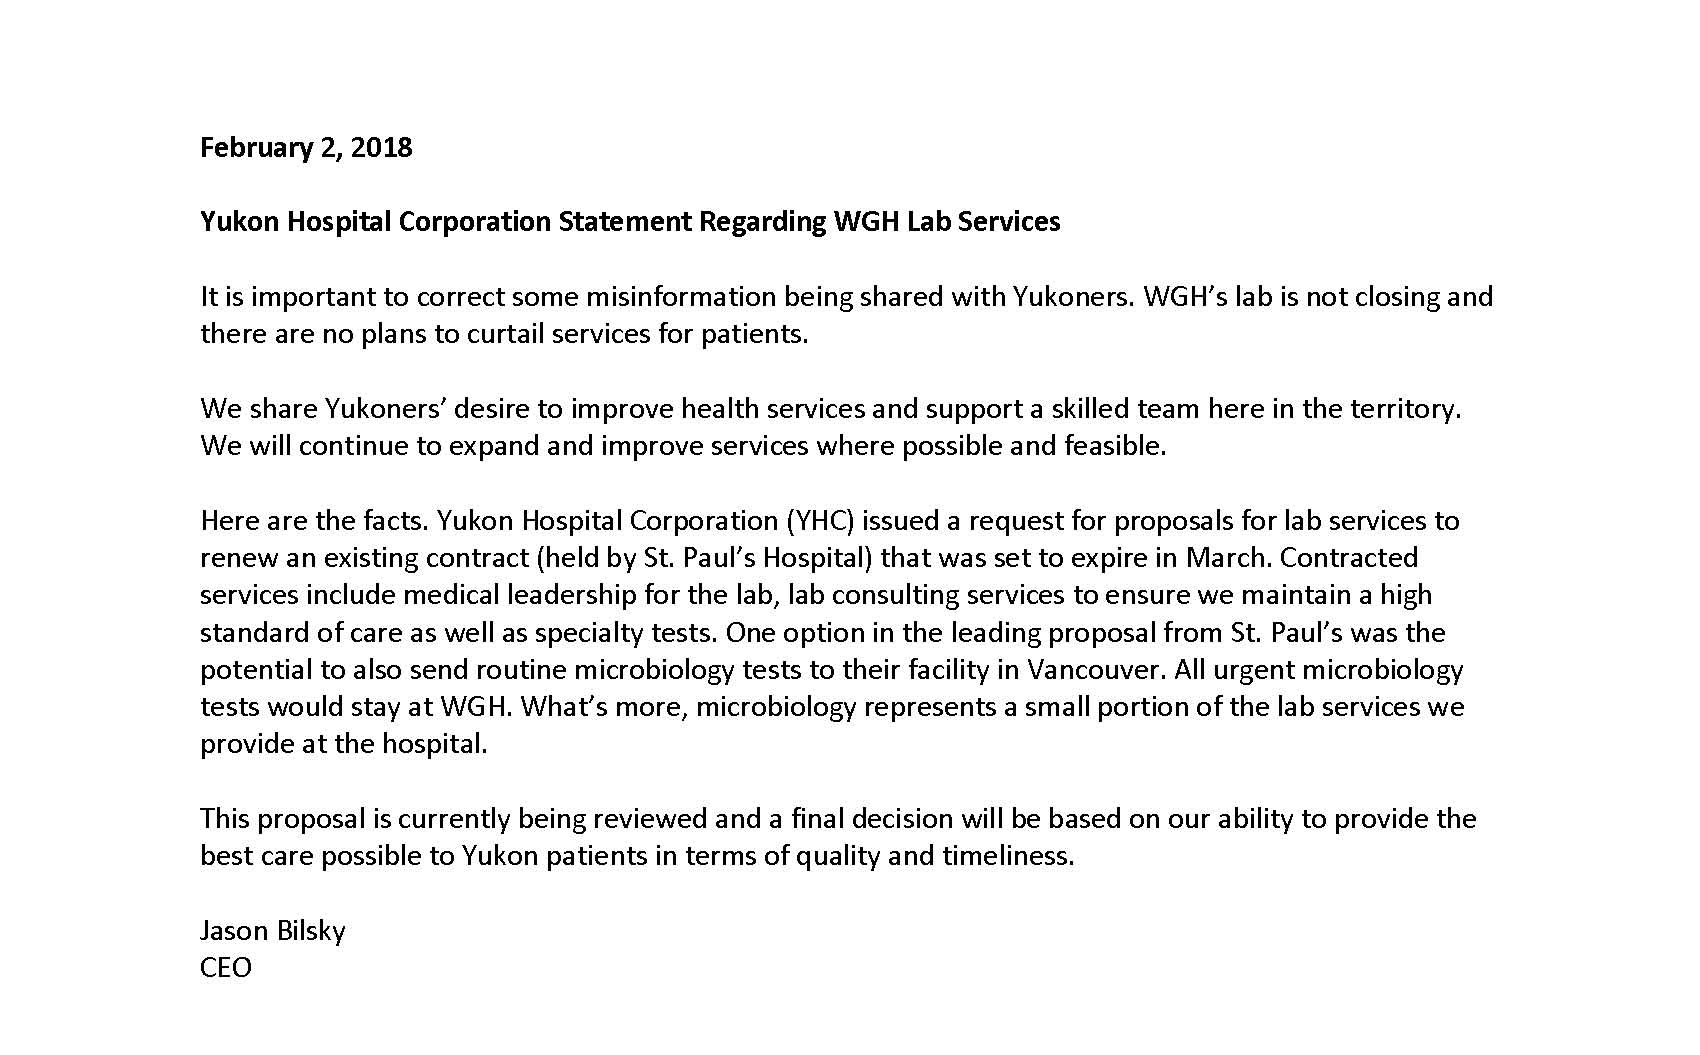 Hospital Plans to Contract Out Microbiology Testing to BC - Yukon